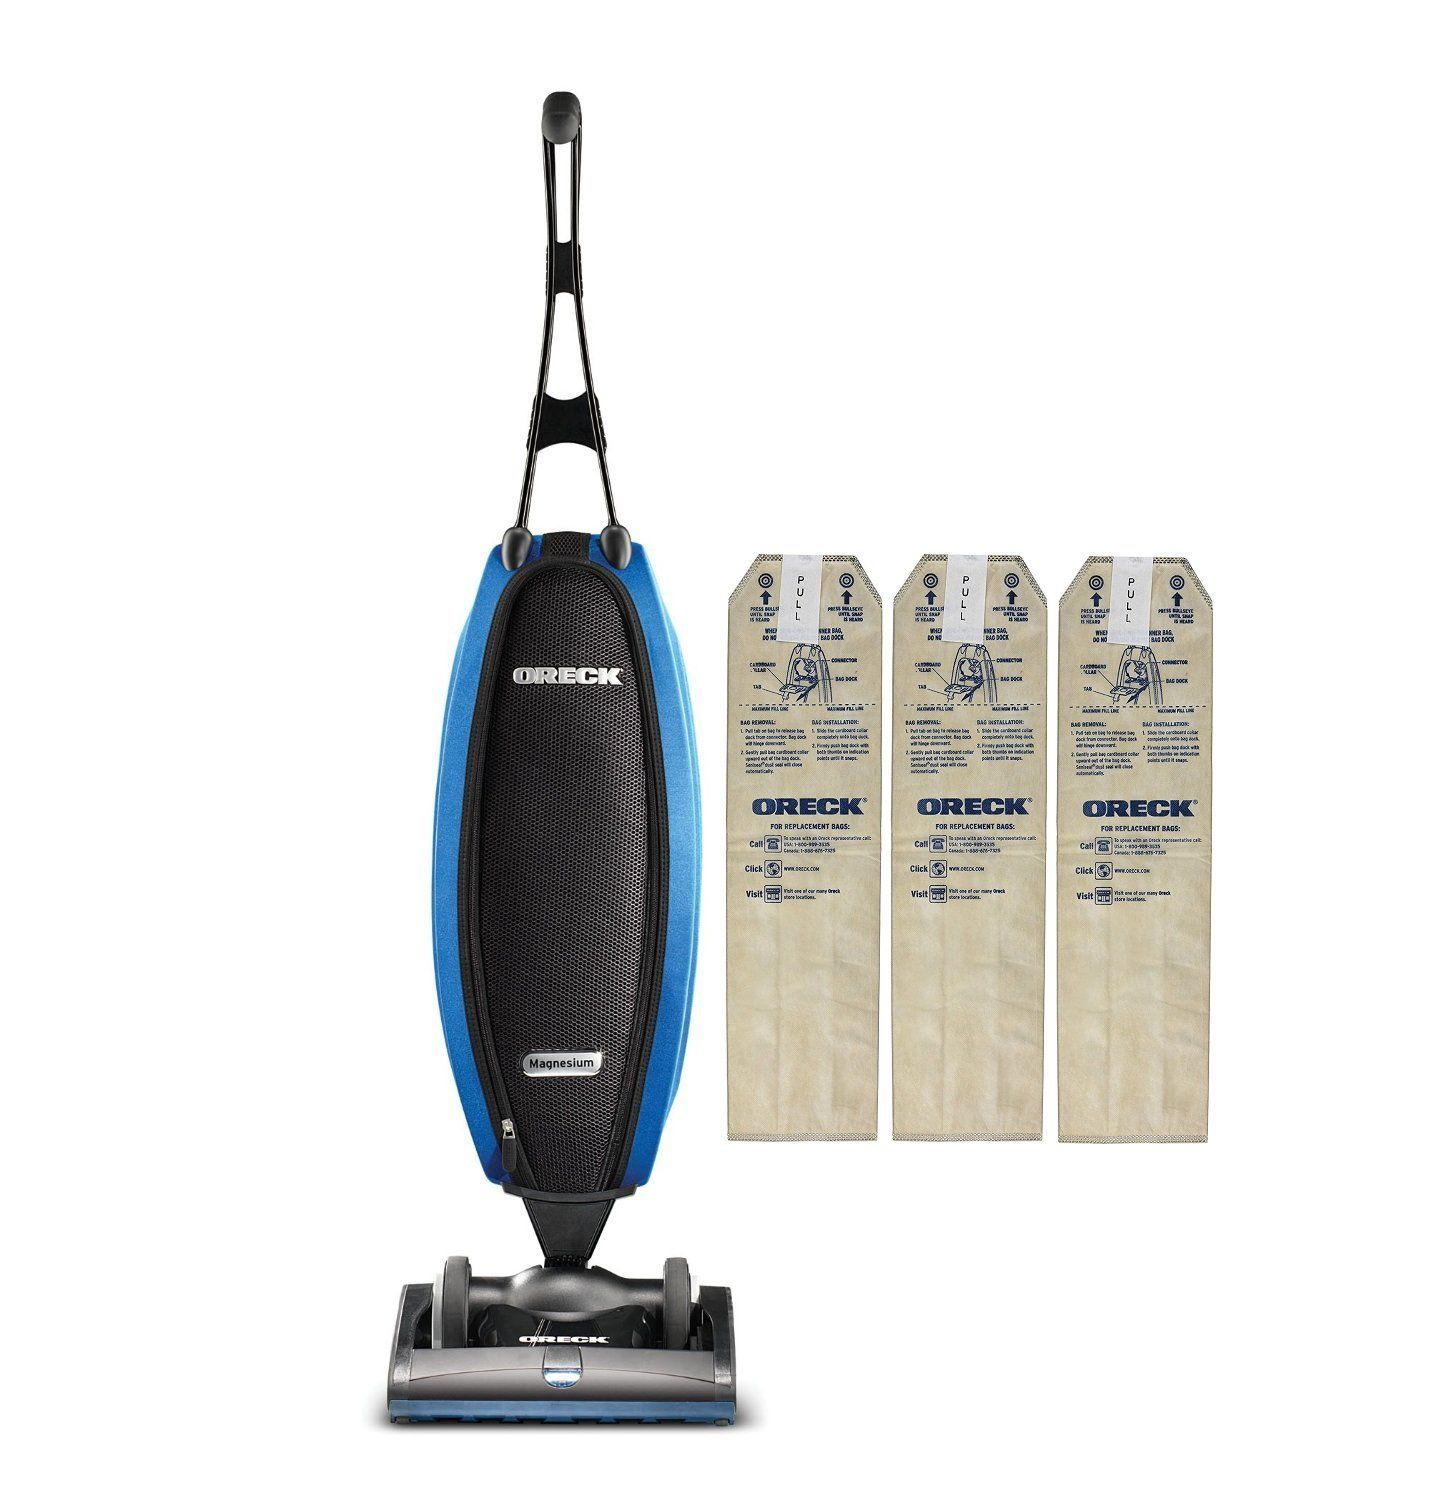 Oreck upright vacuum cleaner lw100 with 3 hepa bags carpets oreck upright vacuum cleaner lw100 with 3 hepa bags carpets tile and hardwood flooring dailygadgetfo Choice Image